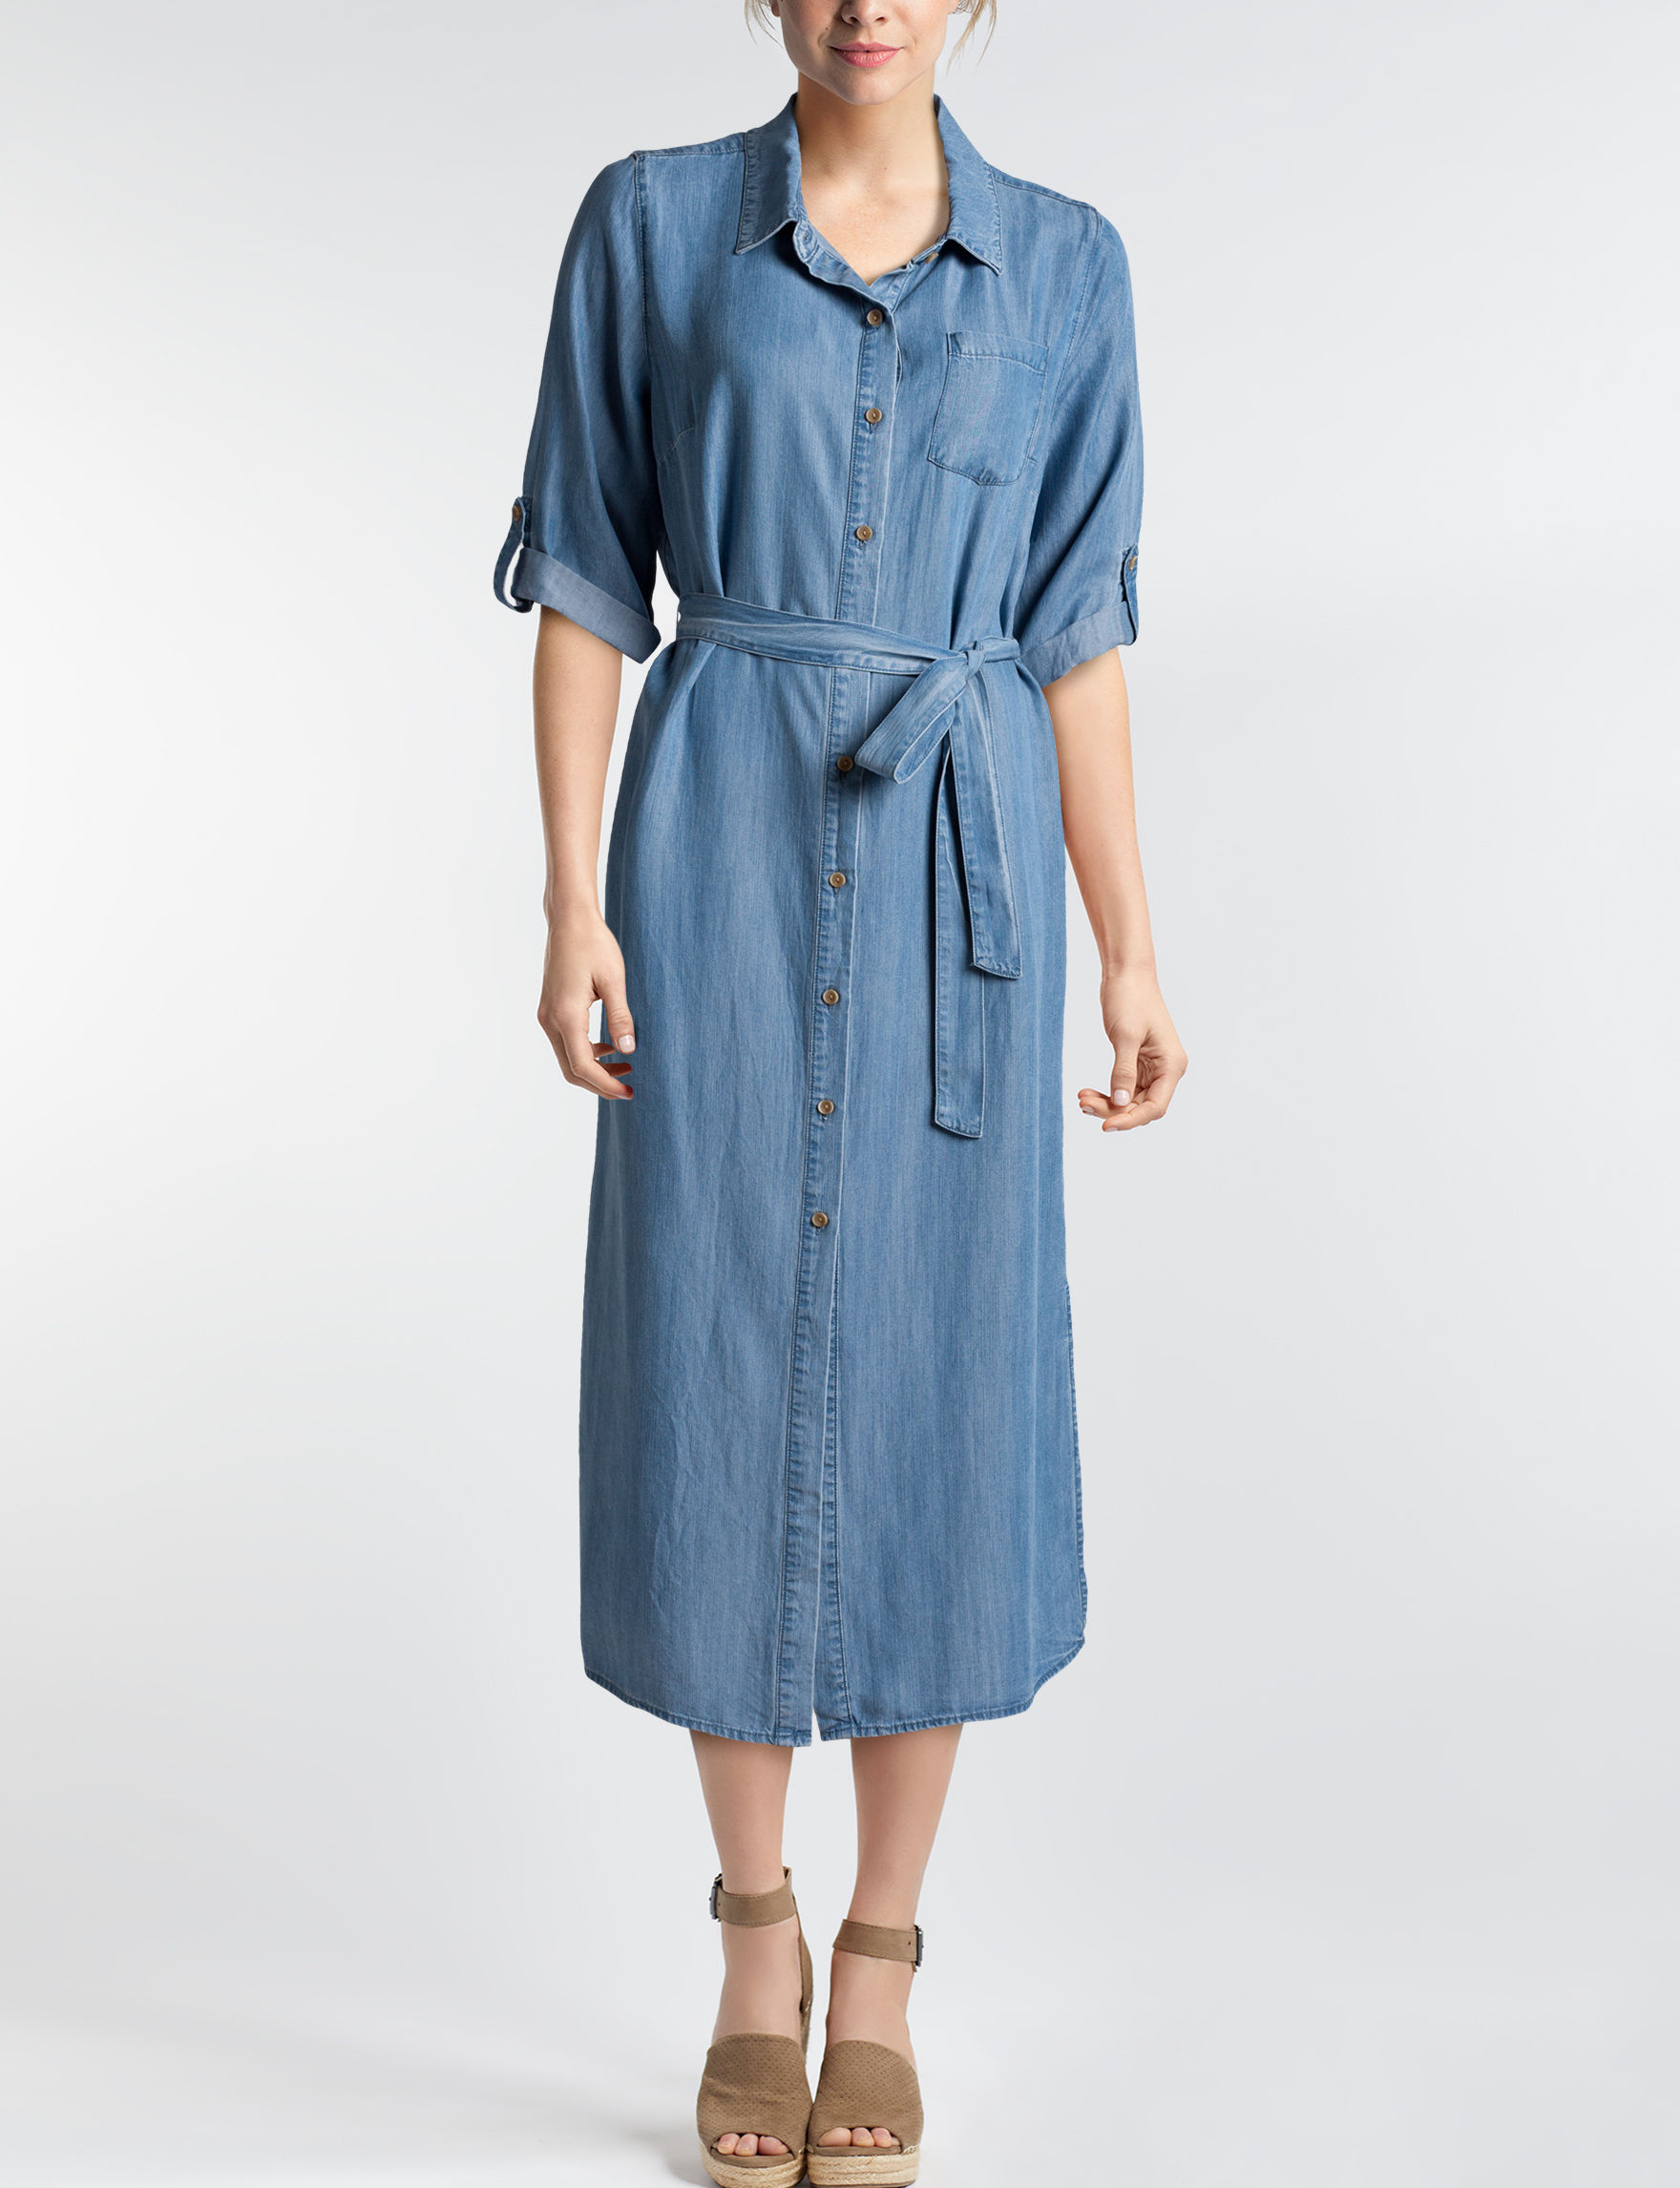 Glamour Chambray Everyday & Casual Shirt Dresses